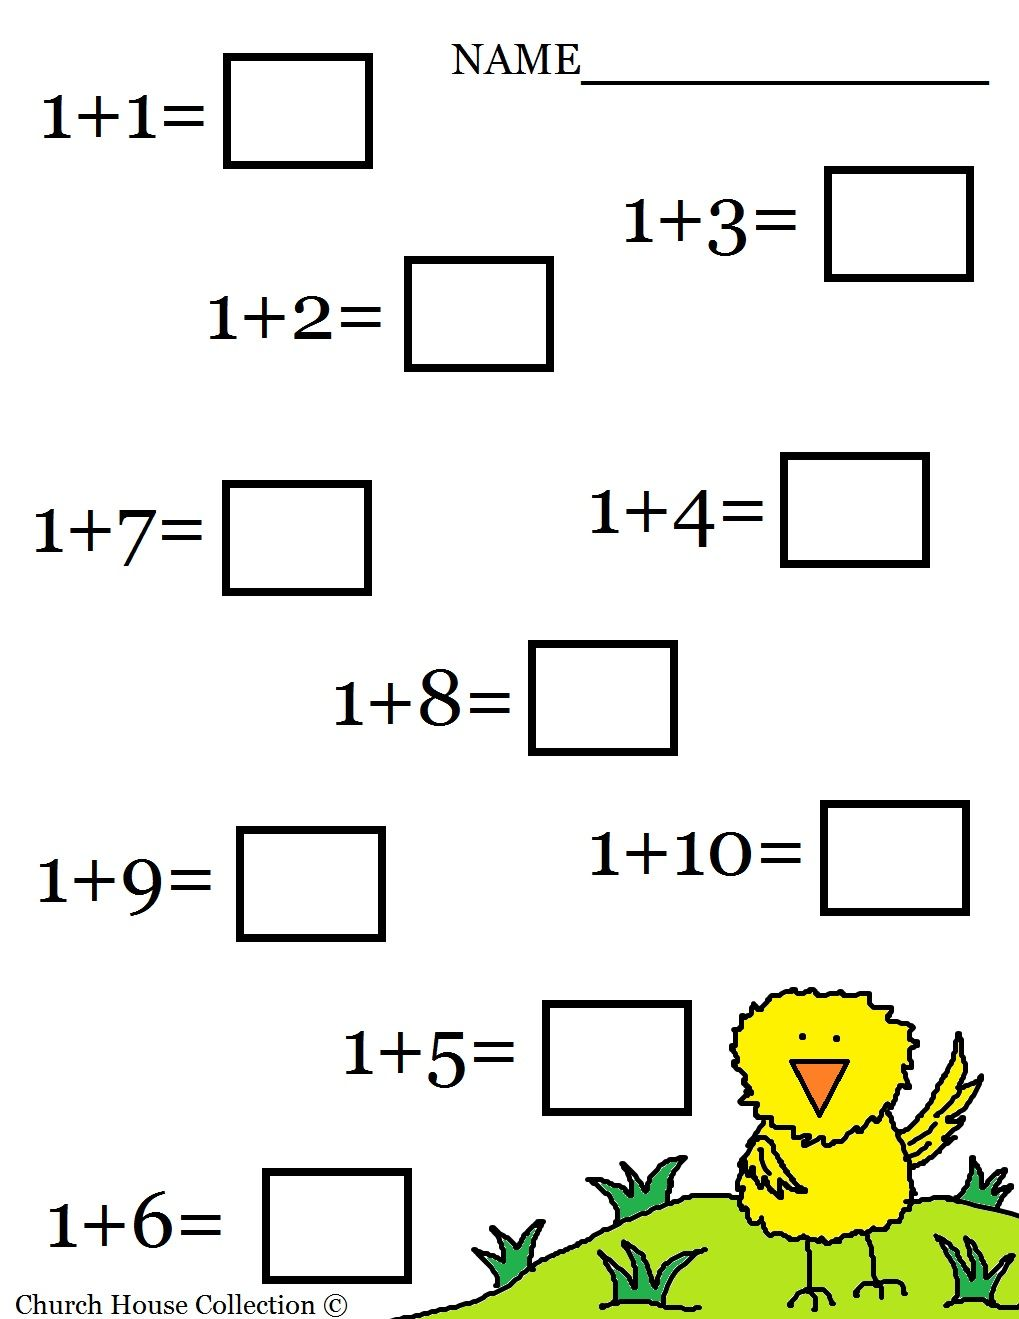 Aldiablosus  Wonderful  Images About Worksheets  Math On Pinterest  Math Sheets  With Marvelous  Images About Worksheets  Math On Pinterest  Math Sheets Math Worksheets For Kindergarten And Simple Addition With Easy On The Eye Whole Number Multiplication Worksheets Also Handwriting Worksheets Printable Free In Addition Types Of Fractions Worksheets And Apostrophe S Worksheet As Well As Geographic Terms Worksheet Additionally Easy Density Worksheet From Pinterestcom With Aldiablosus  Marvelous  Images About Worksheets  Math On Pinterest  Math Sheets  With Easy On The Eye  Images About Worksheets  Math On Pinterest  Math Sheets Math Worksheets For Kindergarten And Simple Addition And Wonderful Whole Number Multiplication Worksheets Also Handwriting Worksheets Printable Free In Addition Types Of Fractions Worksheets From Pinterestcom